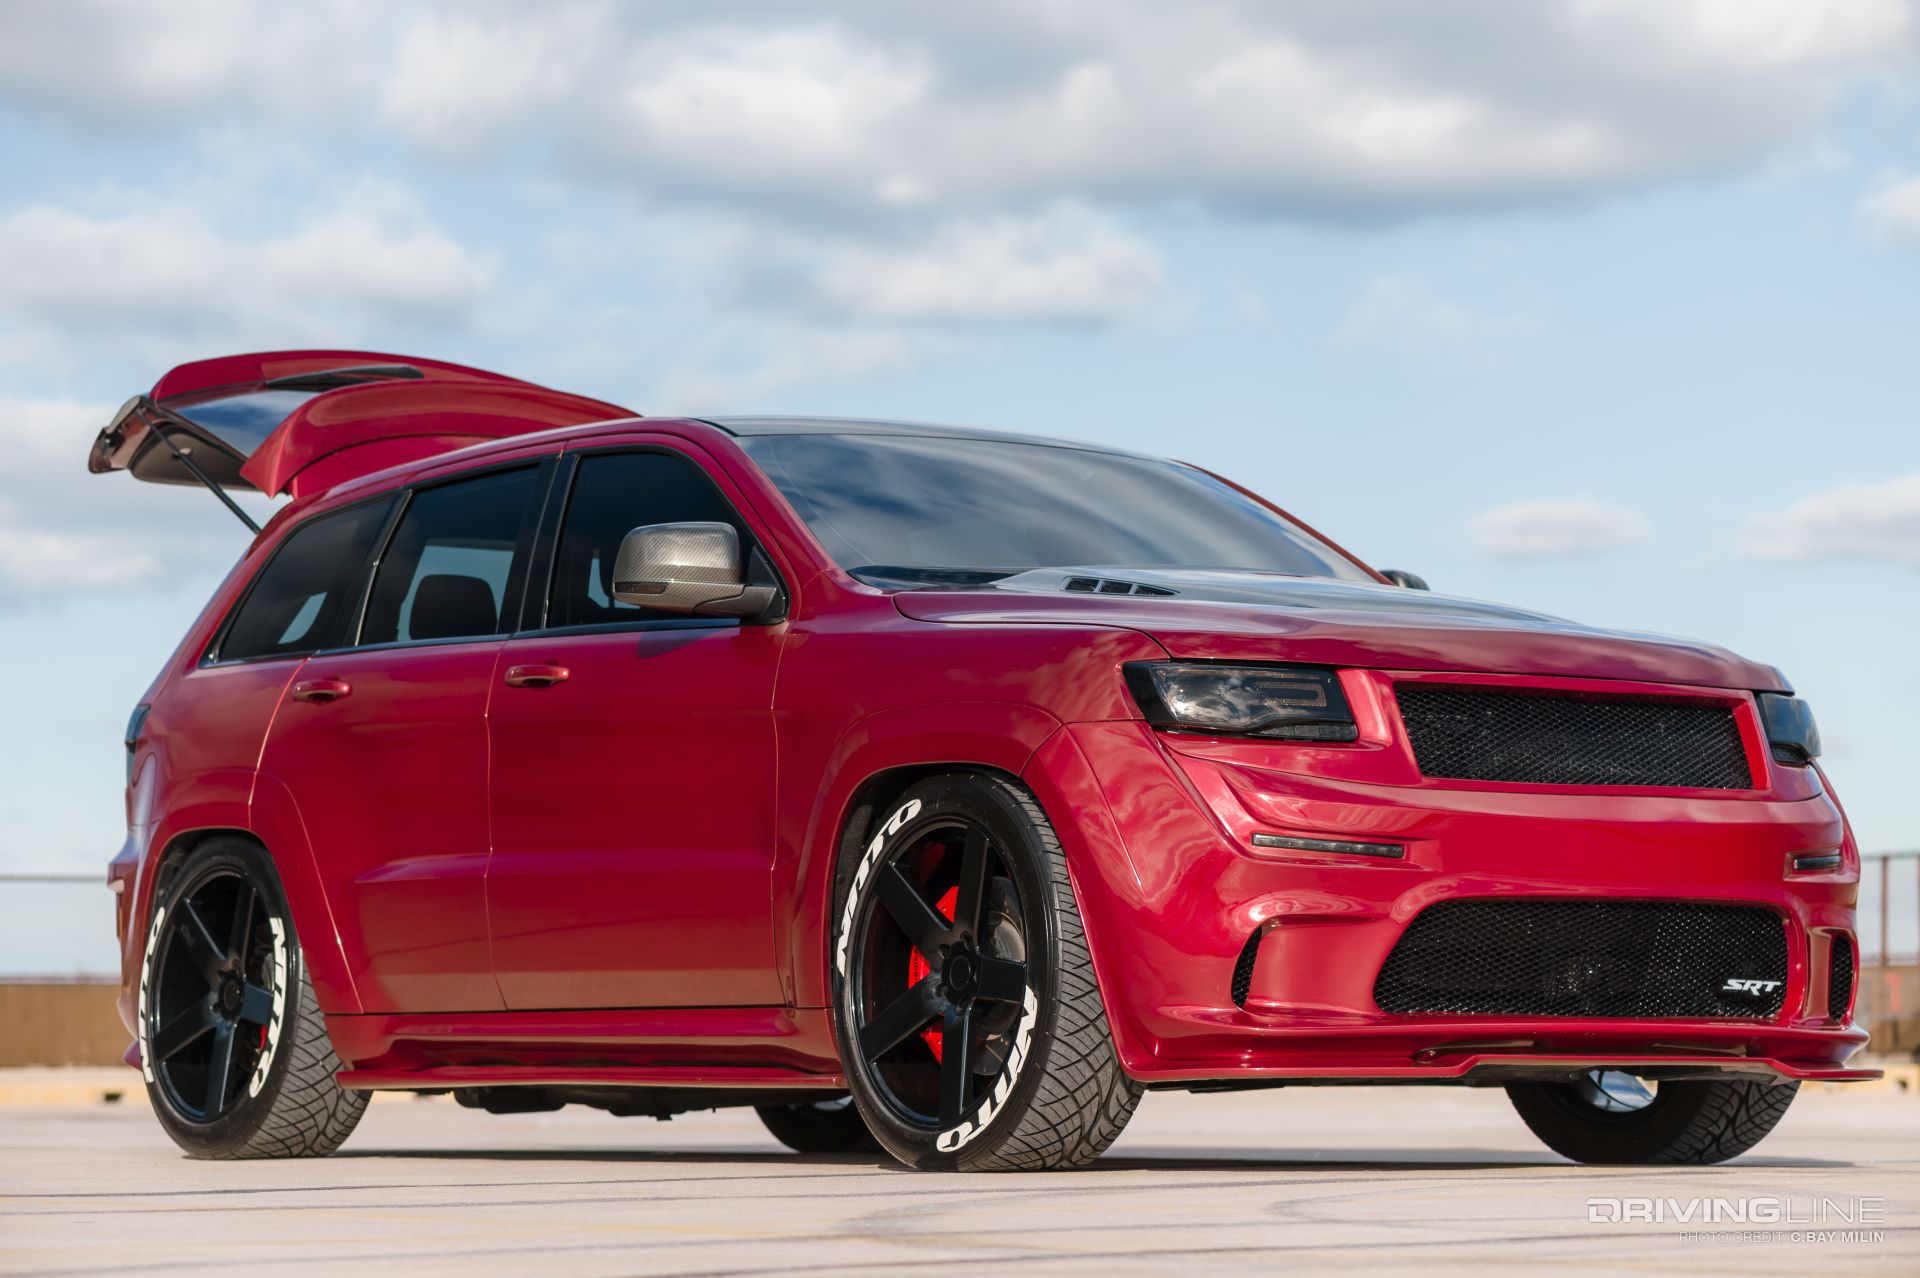 2012 Jeep Grand Cherokee SRT8 Supercharged Monster ...